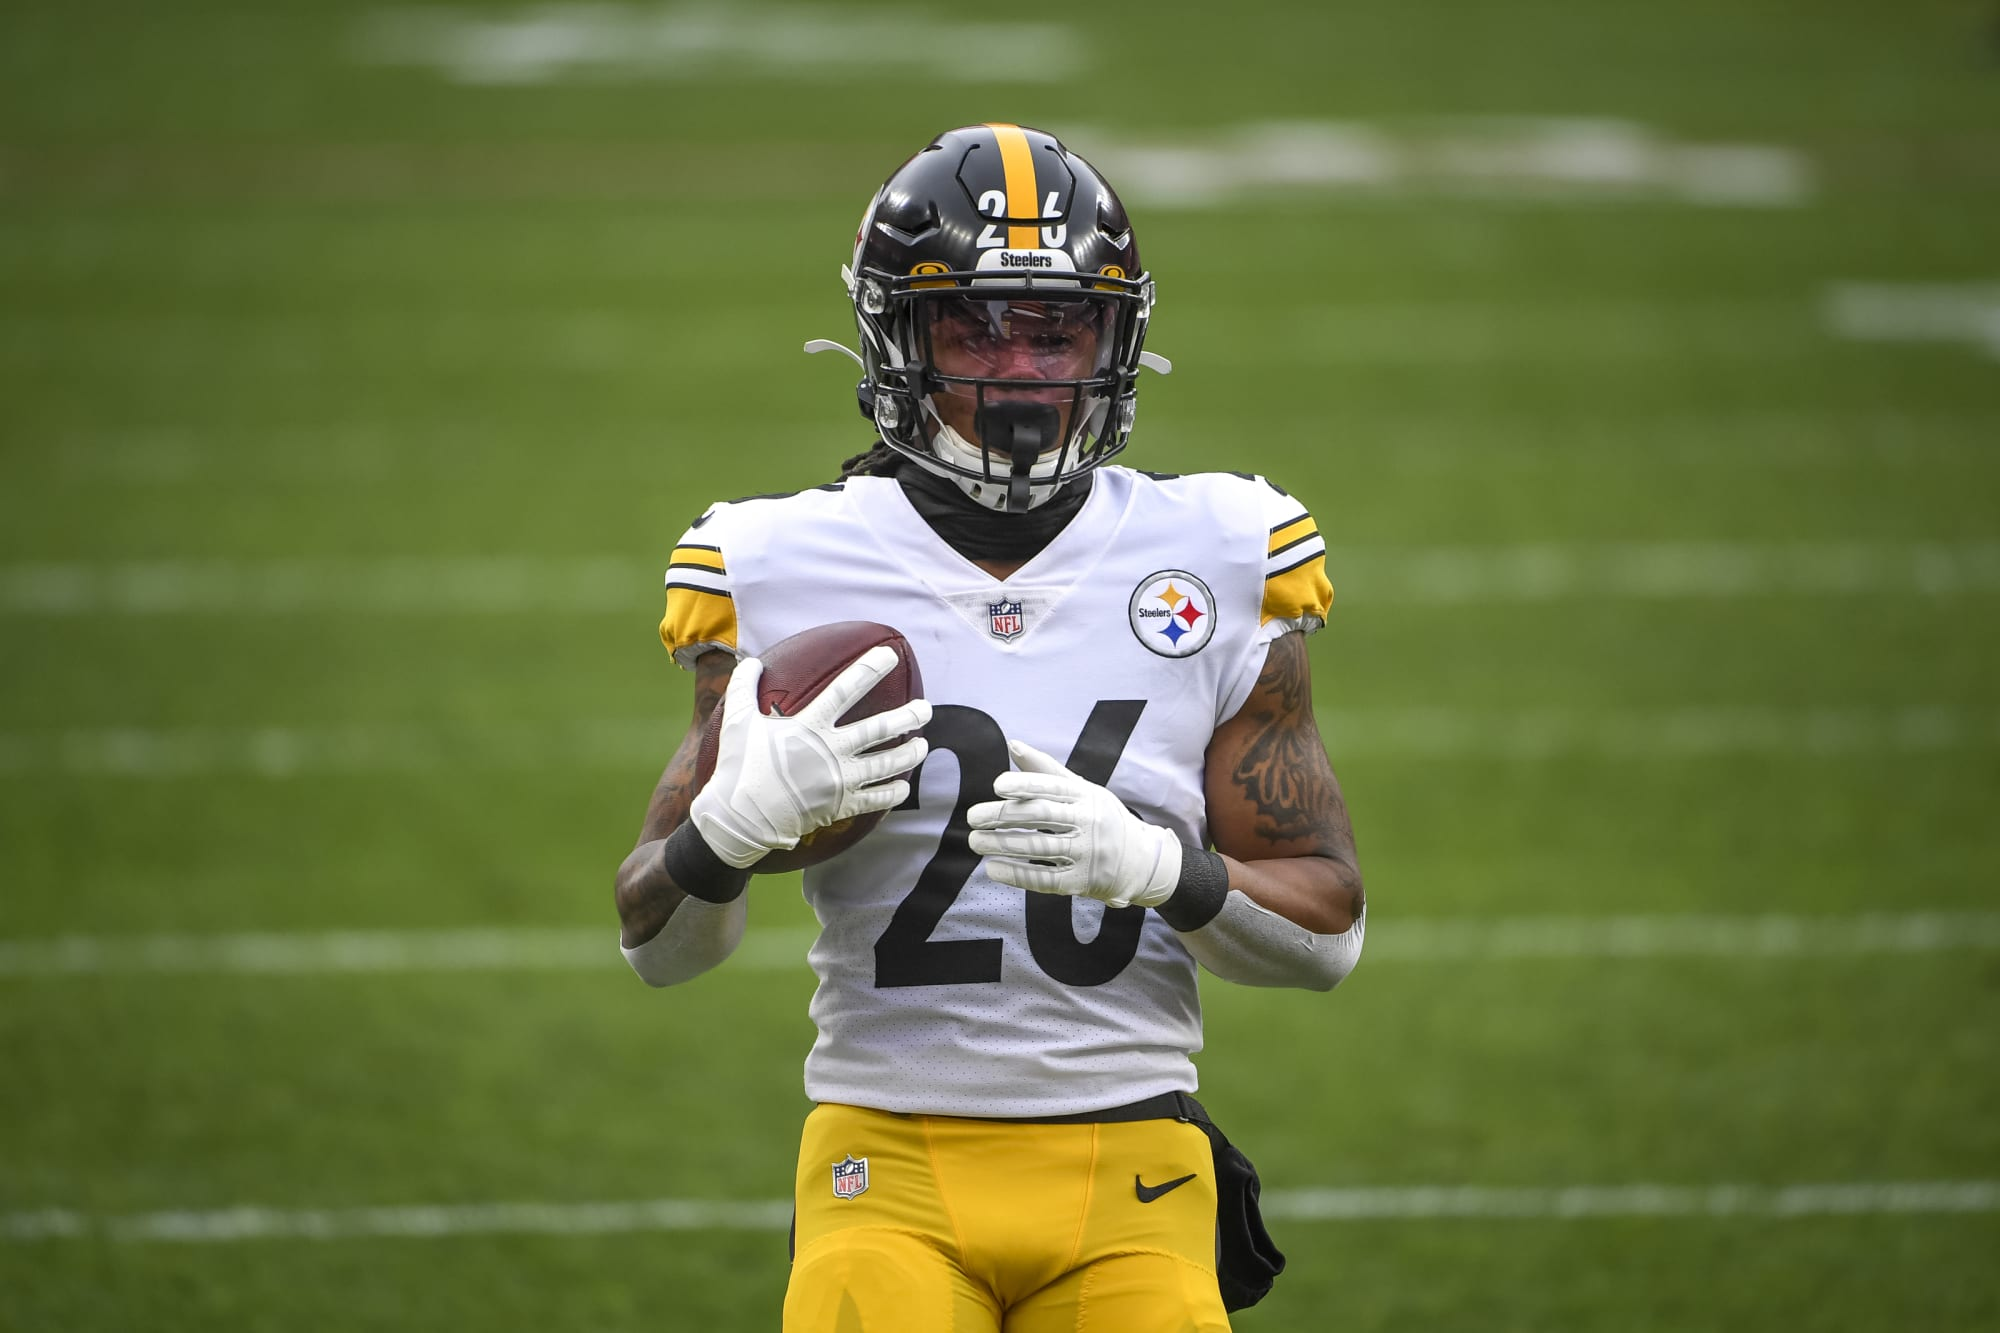 Is Anthony McFarland best option for Steelers if they miss out on RB early?